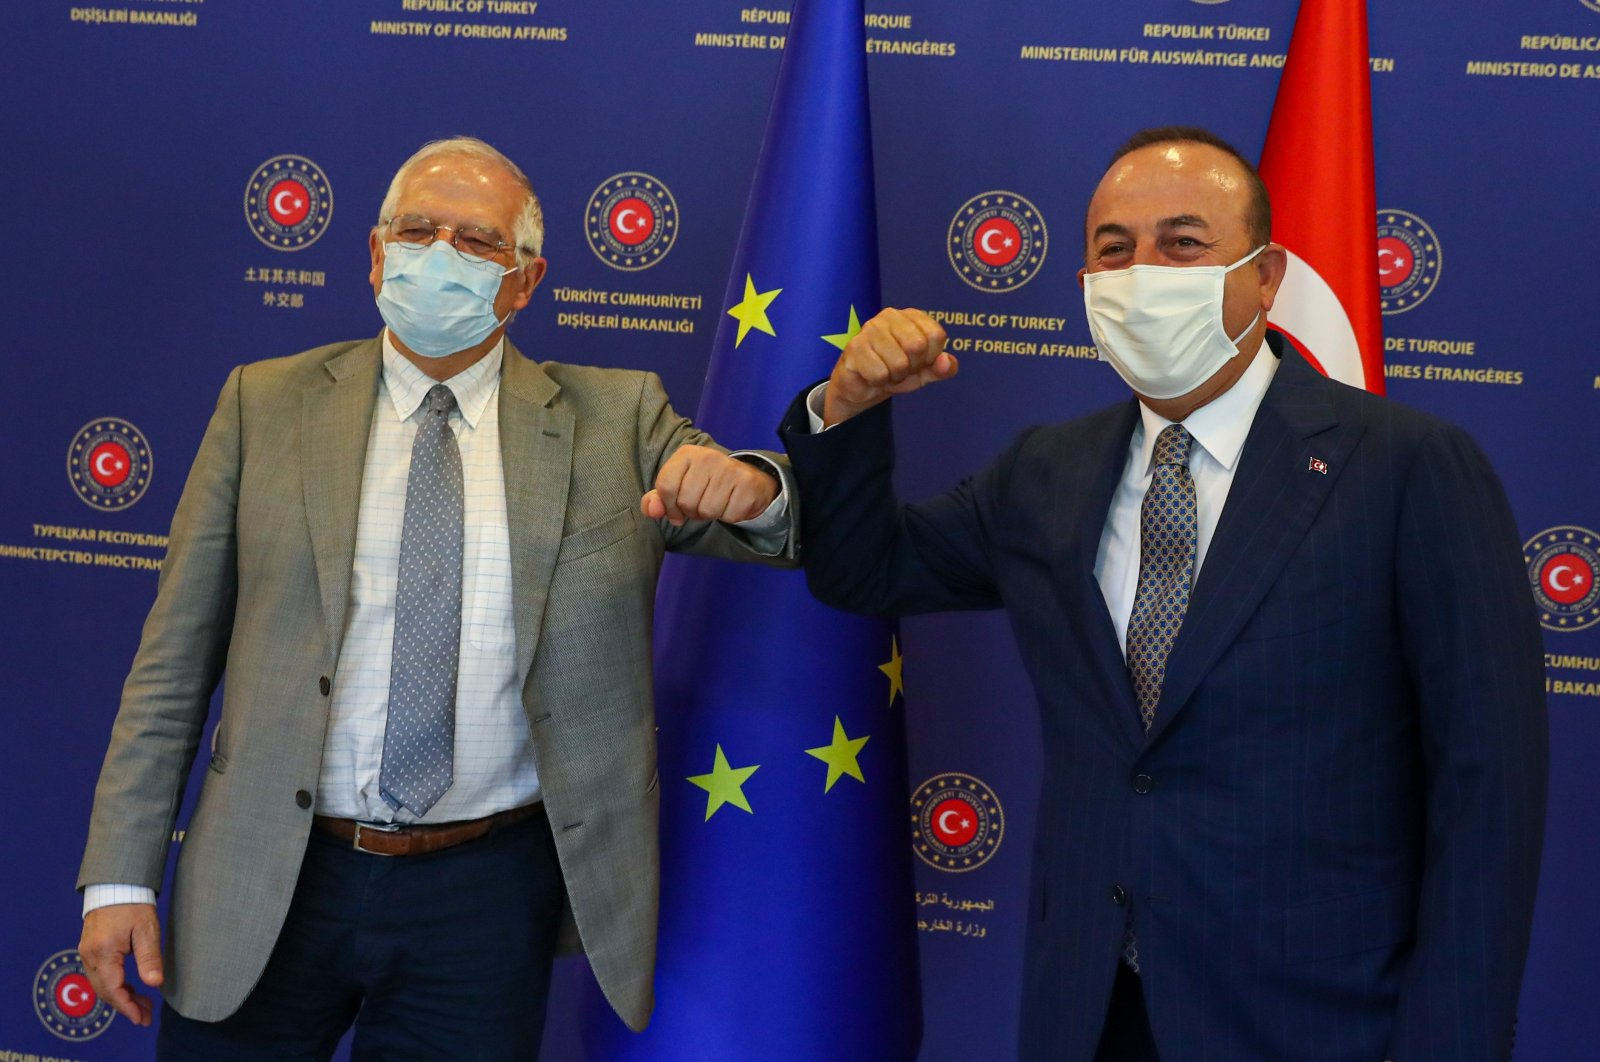 EU High Representative Josep Borrell (L) and Foreign Minister Mevlüt Çavuşoğlu during a meeting in the capital Ankara, Turkey, July 7, 2020. (AA Photo)